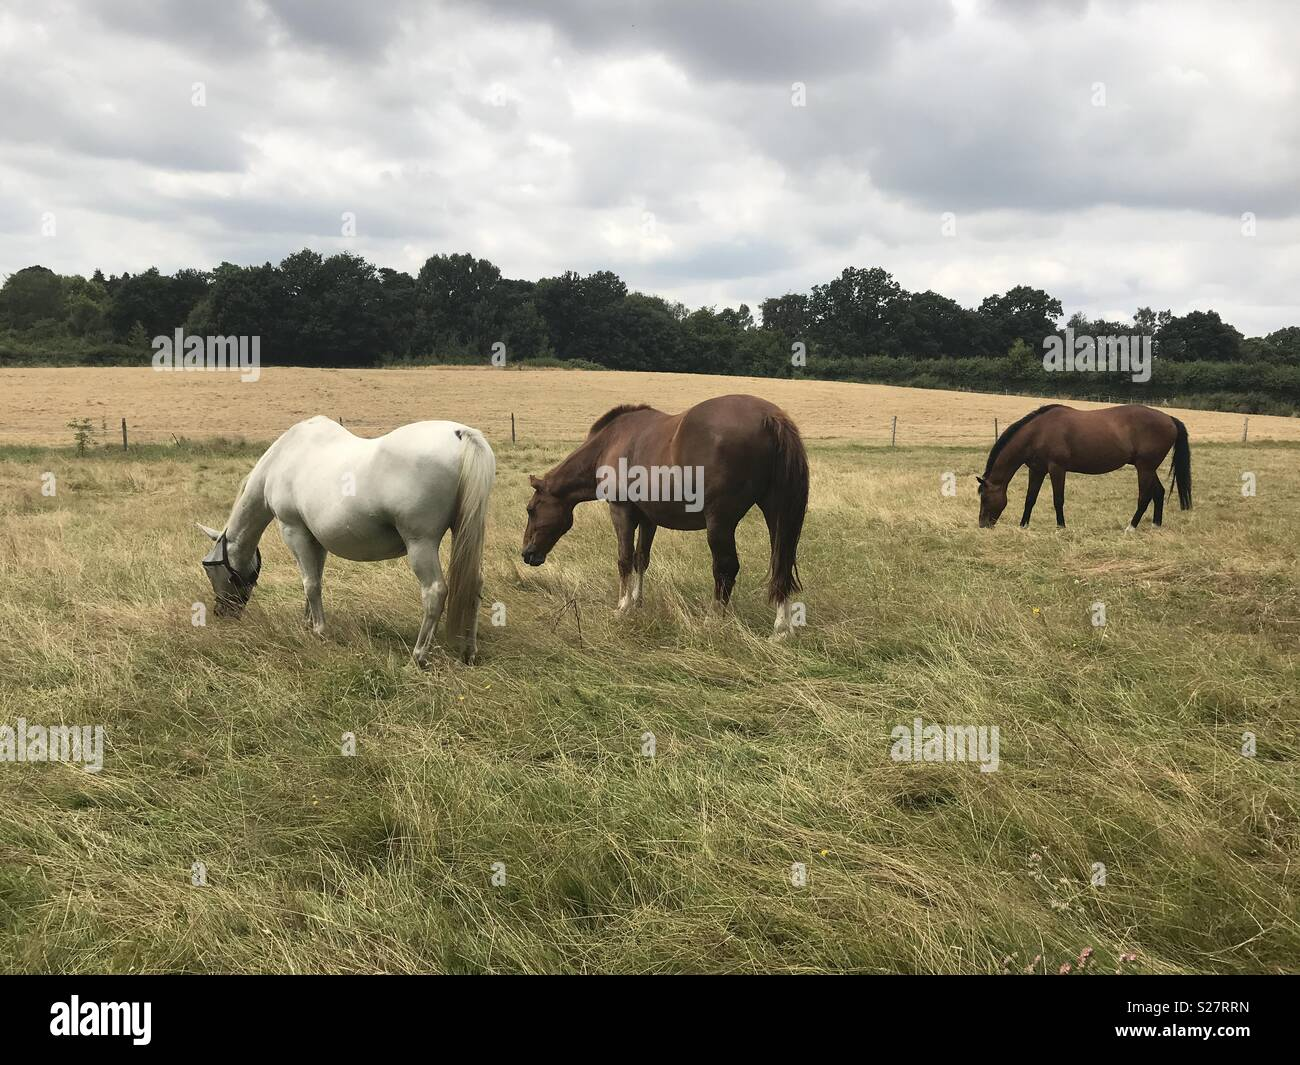 Three horses eating in a field - Stock Image